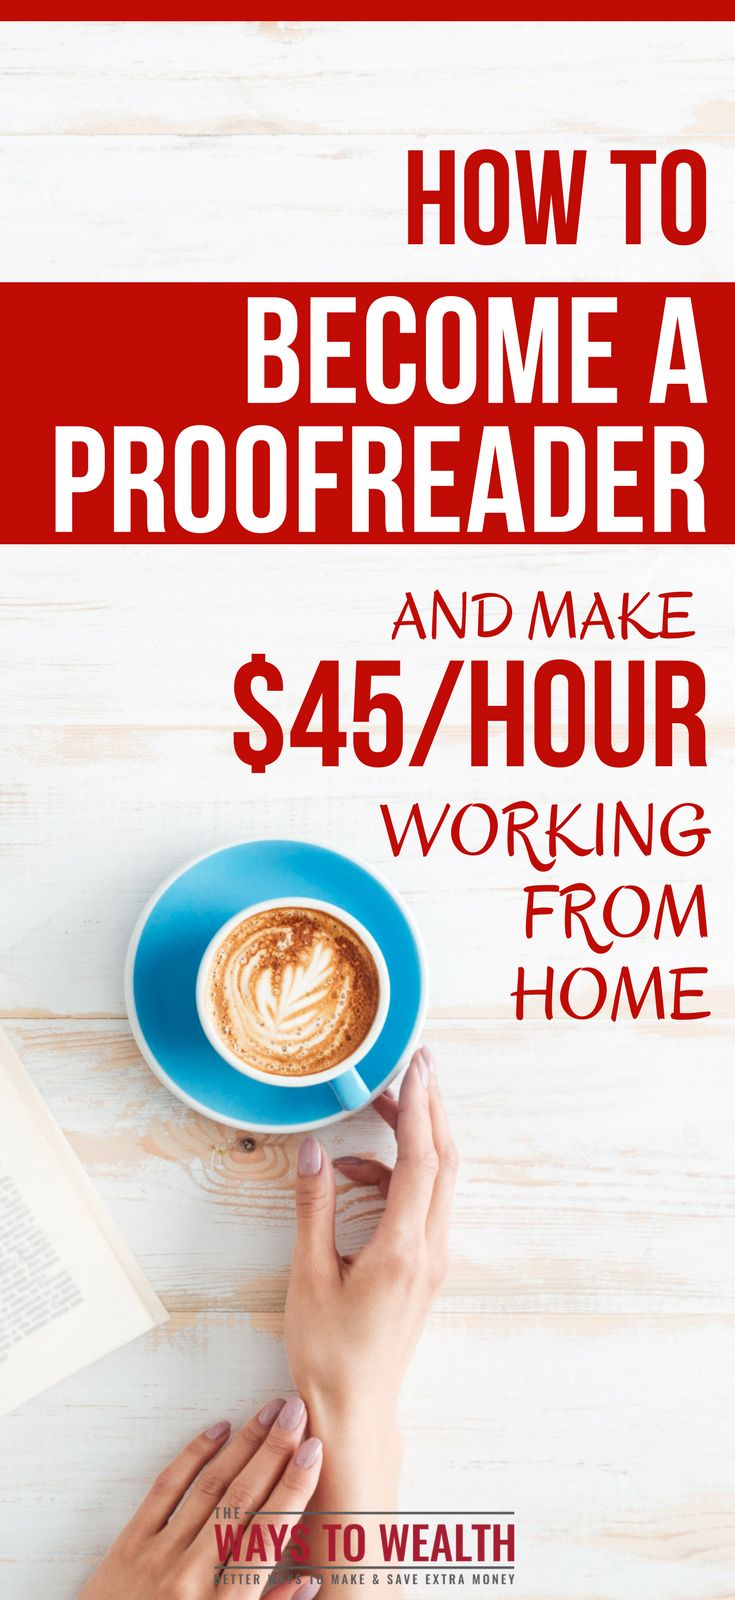 How to Earn $45/Hour Working From Home as a Proofreader proofreading jobs from home | proofreading jobs from home court reporter | proofreading jobs from home beginner | work from home careers get started #wahm #workfromhome #extraincome via @https://www.pinterest.com/thewaystowealth/